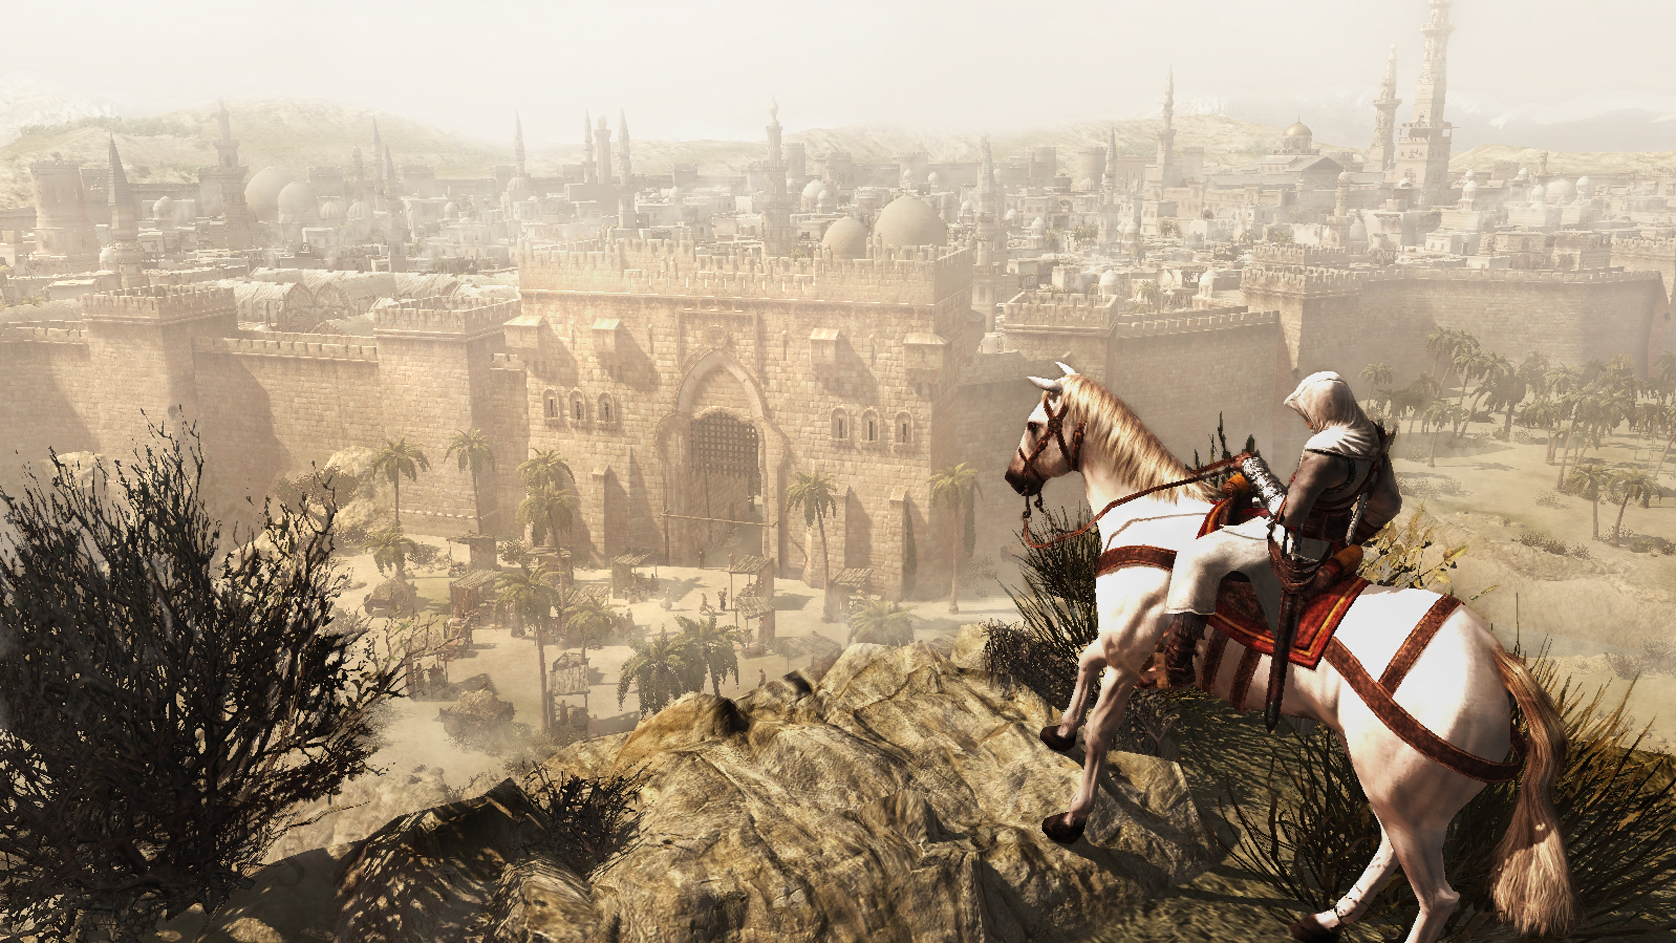 156_assassins_creed_s_damascus_citygates02.jpg